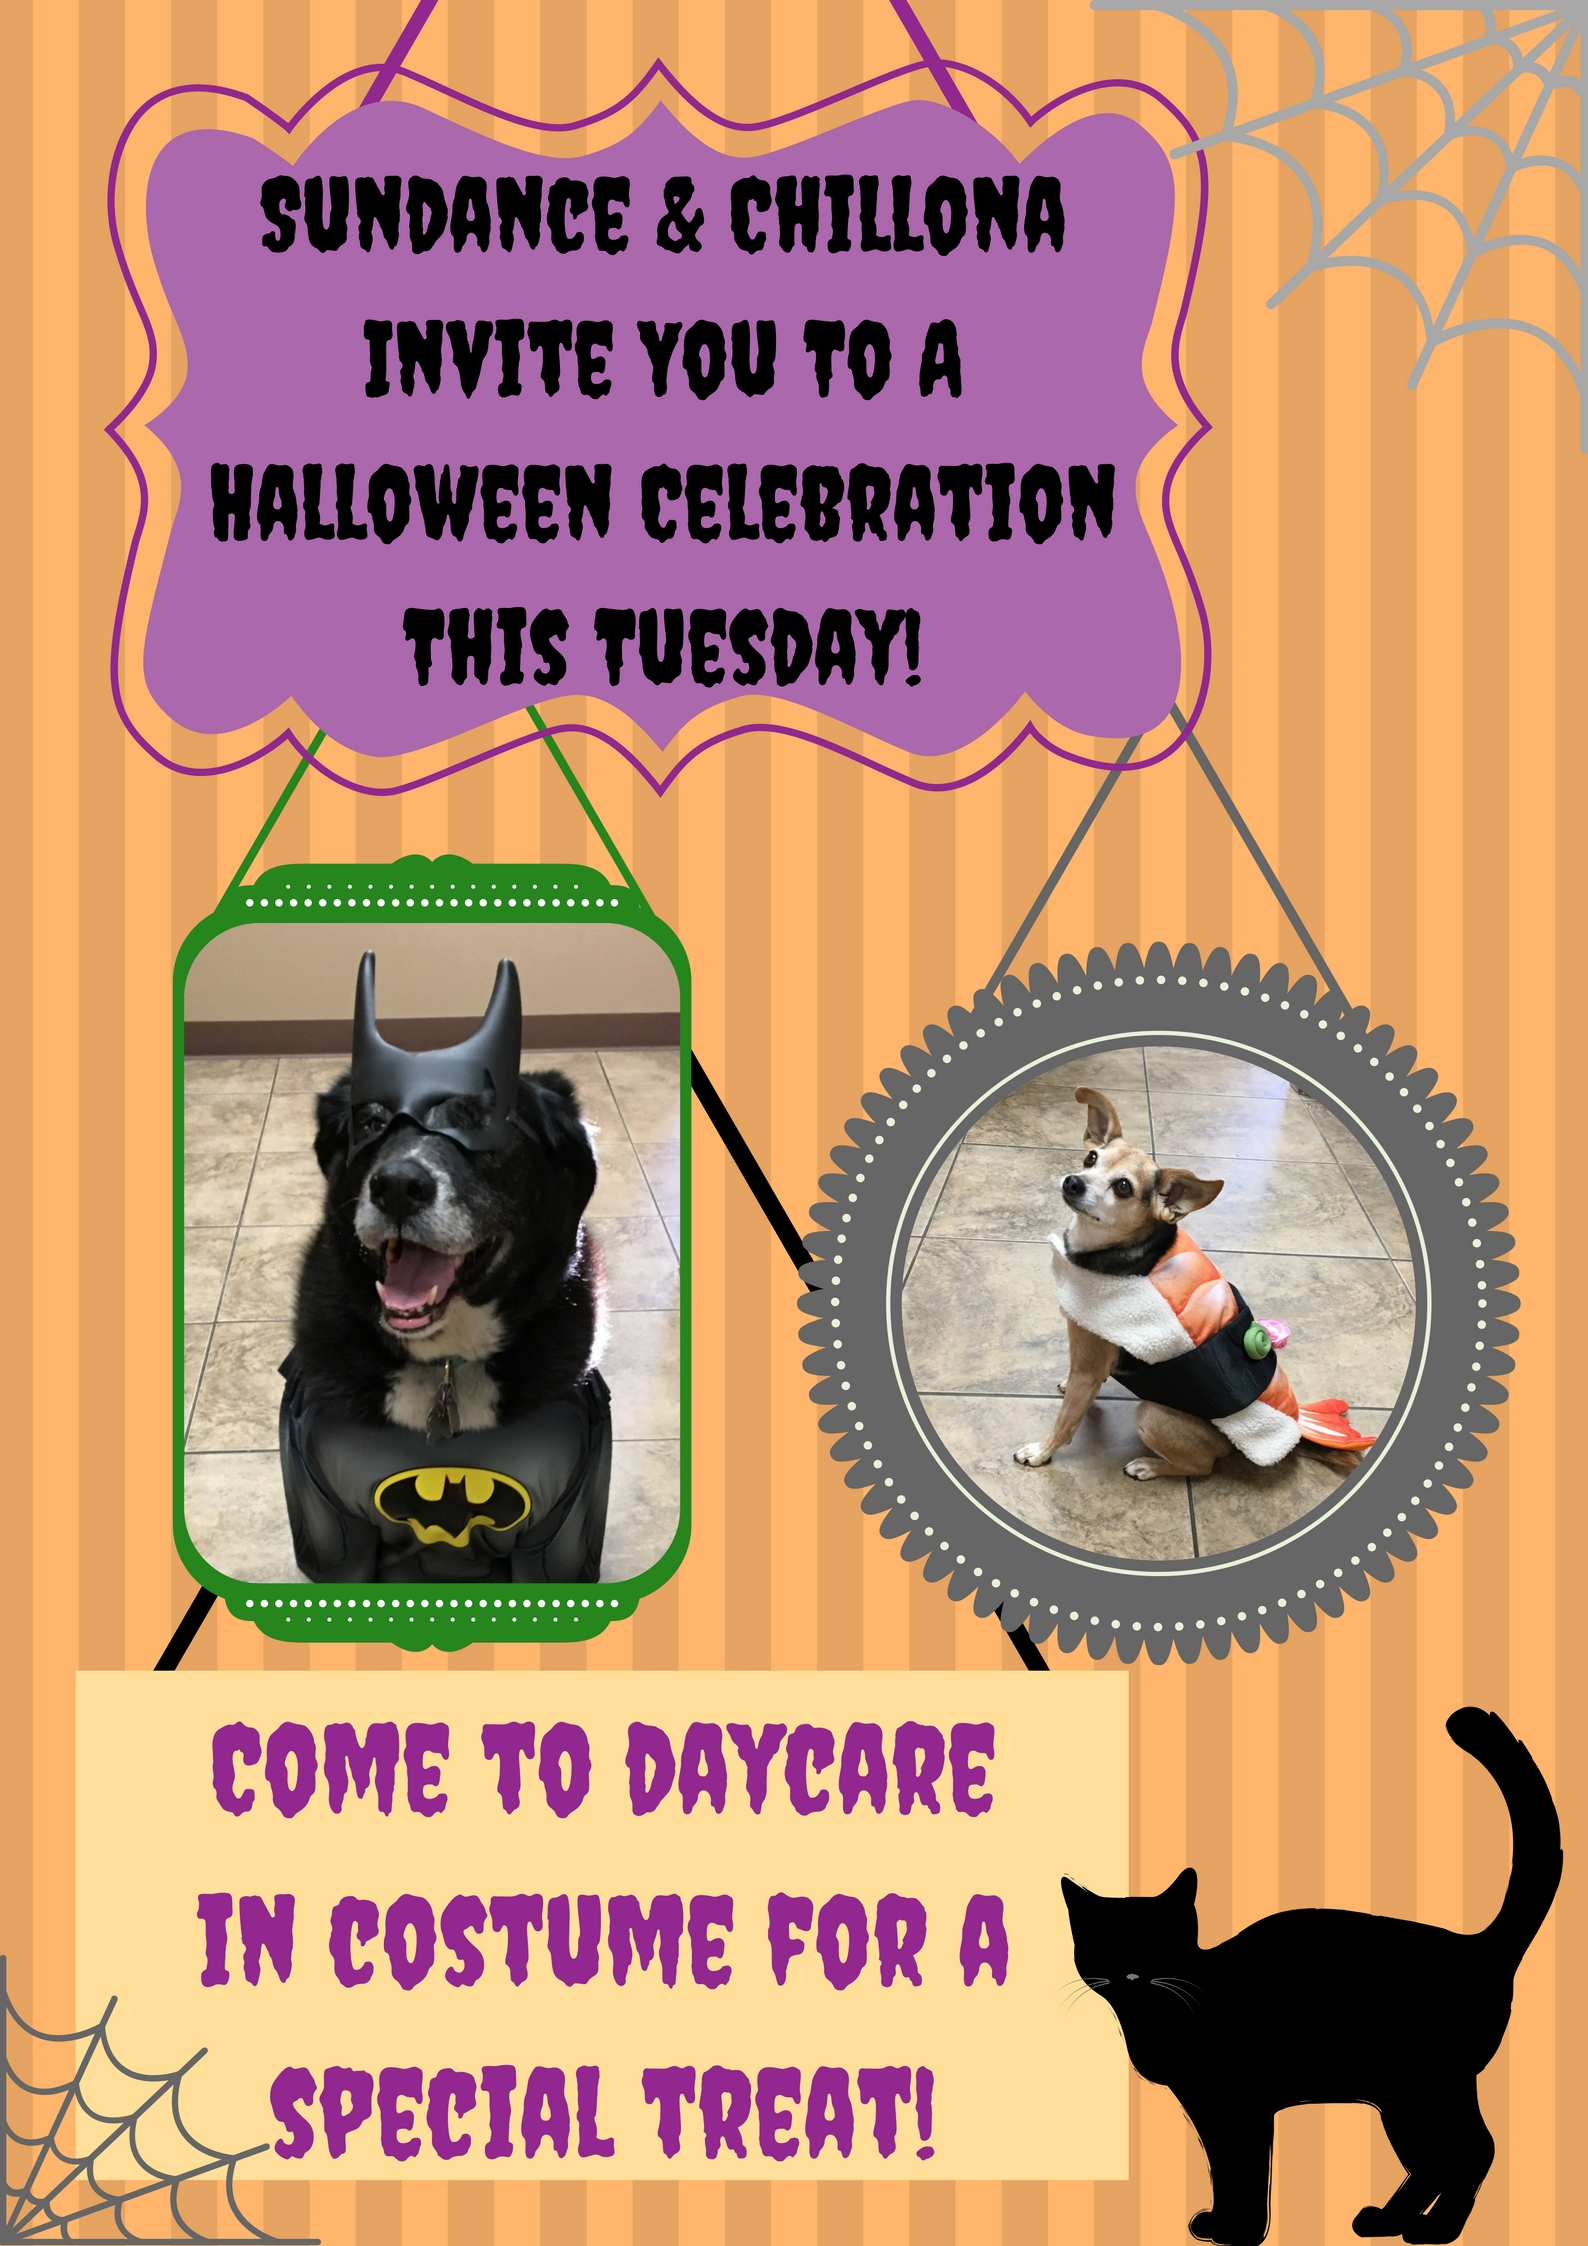 Sundance & Chillona Invite You To A Halloween Celebration This Tuesday!.jpg